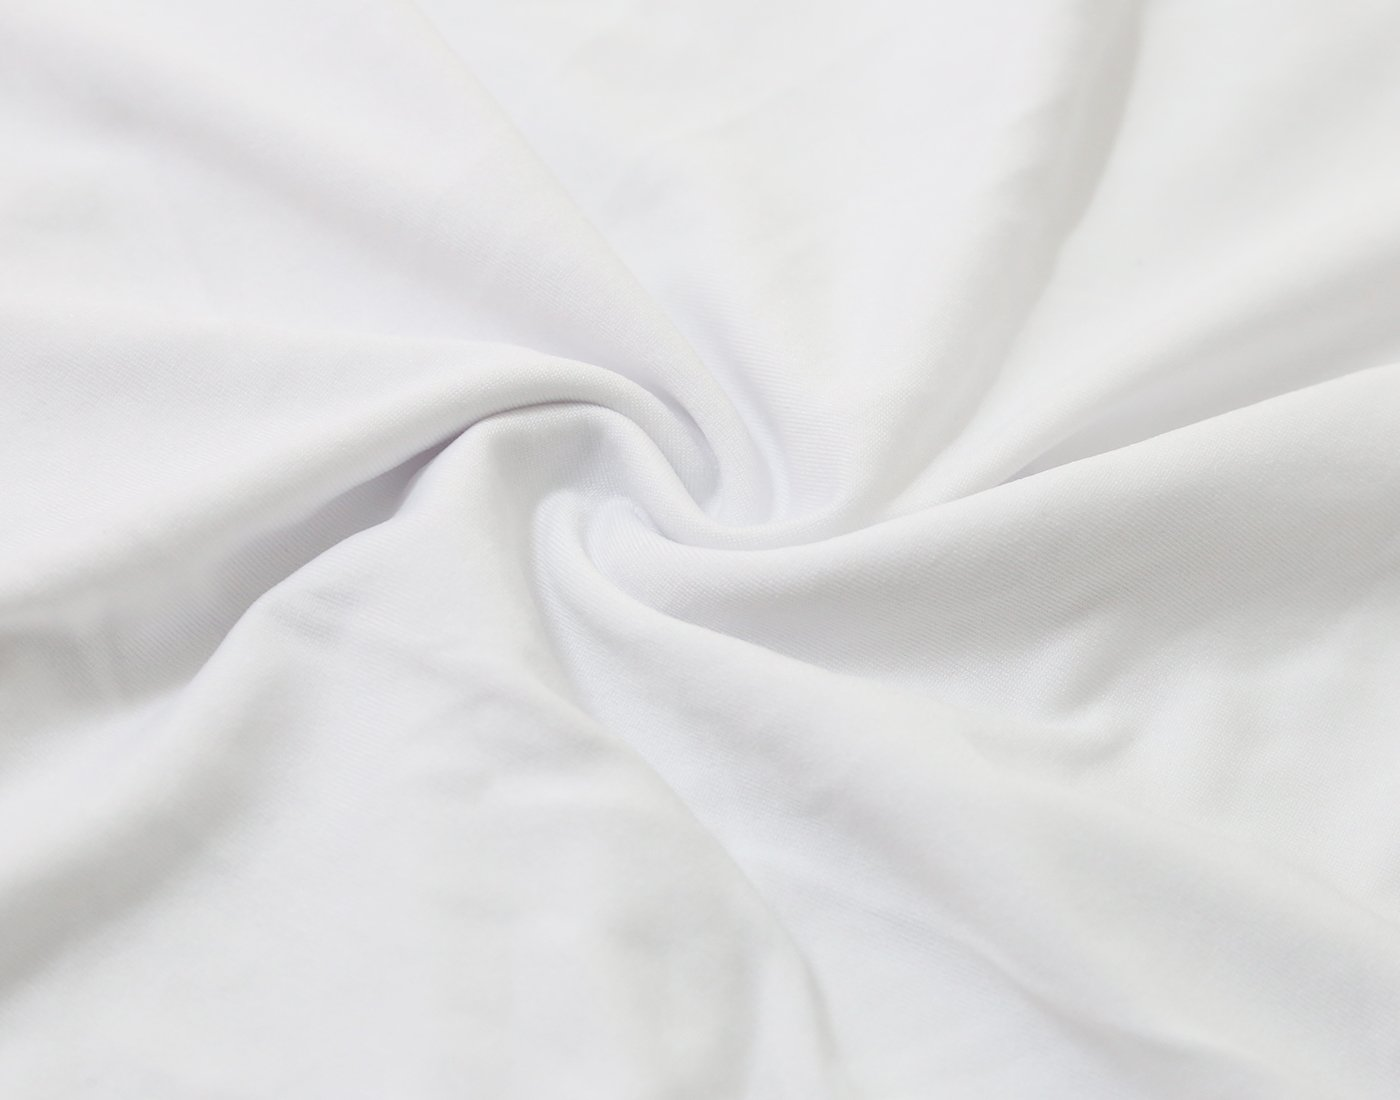 GFCC Spandex Fitted Stretchable Elastic Table Covers Stretch Tablecloth Wedding Party Banquet Tablecloth (8FT ,White) by GFCC